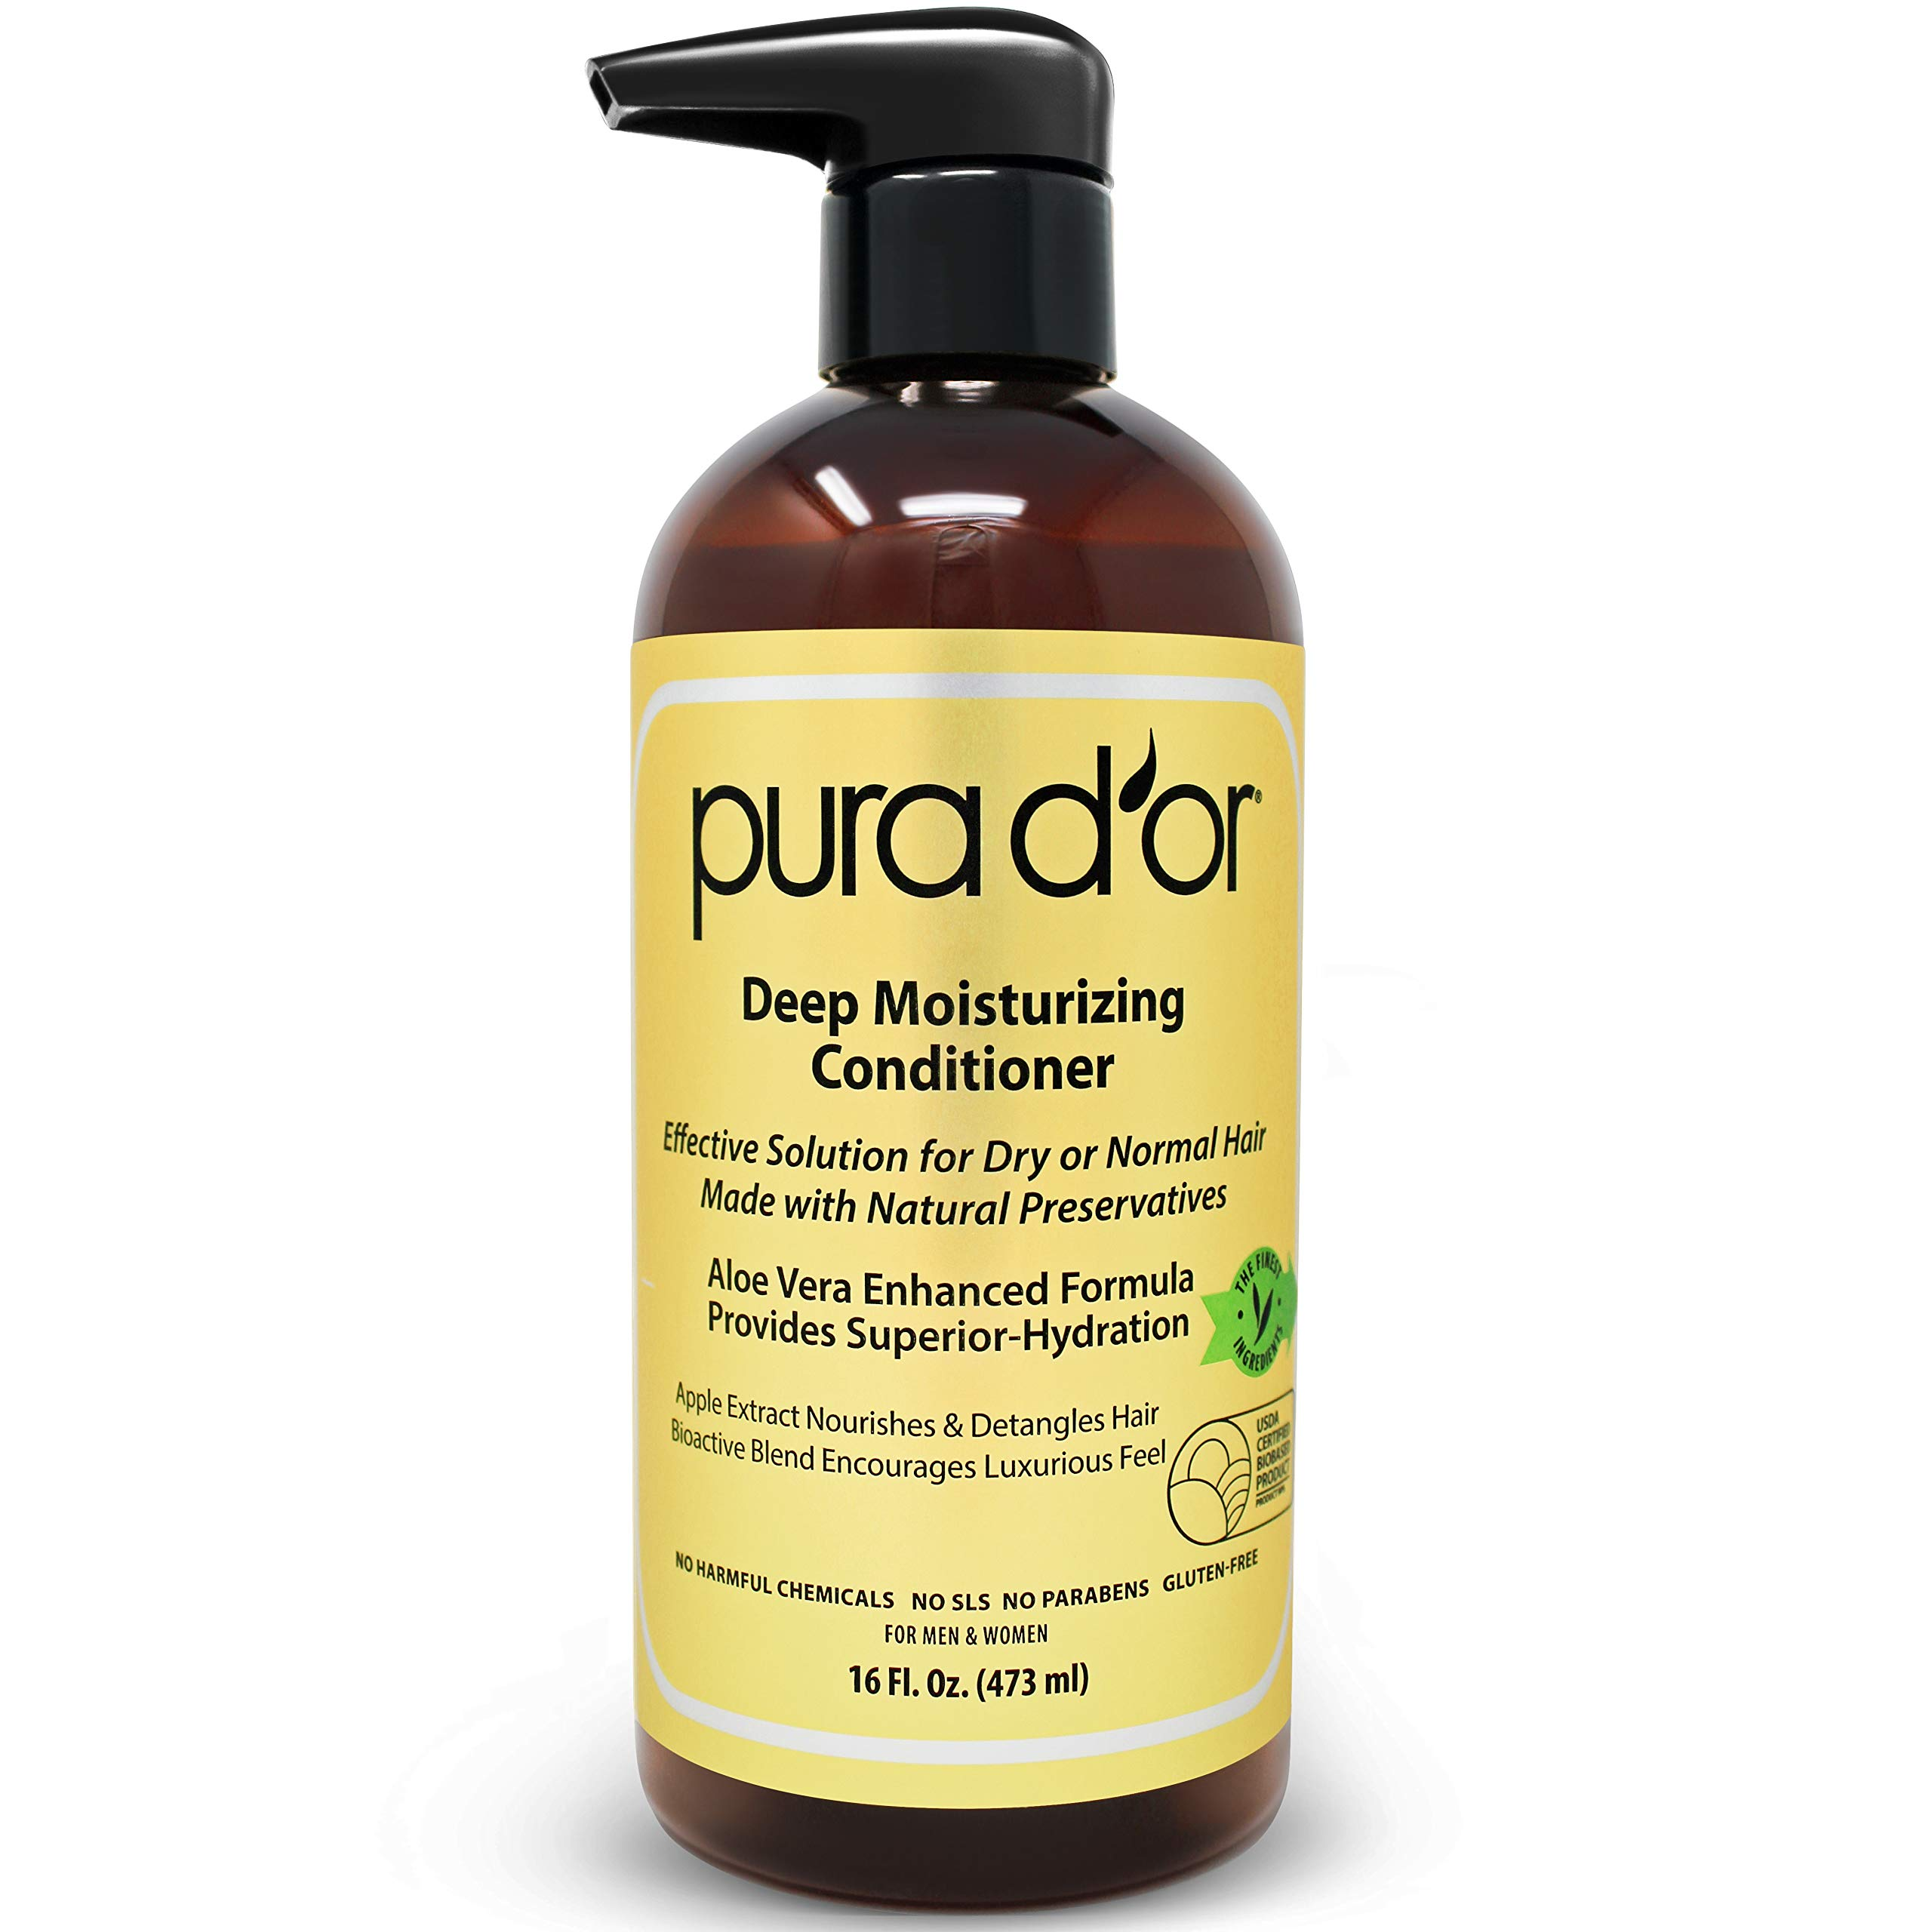 PURA D'OR Deep Moisturizing Conditioner Treatment for Dry Damaged Hair, Softens & Smooths, Color Safe, Sulfate Free with Argan Oil & Natural Ingredients, Men & Women, 16 Fl Oz (Packaging may vary)